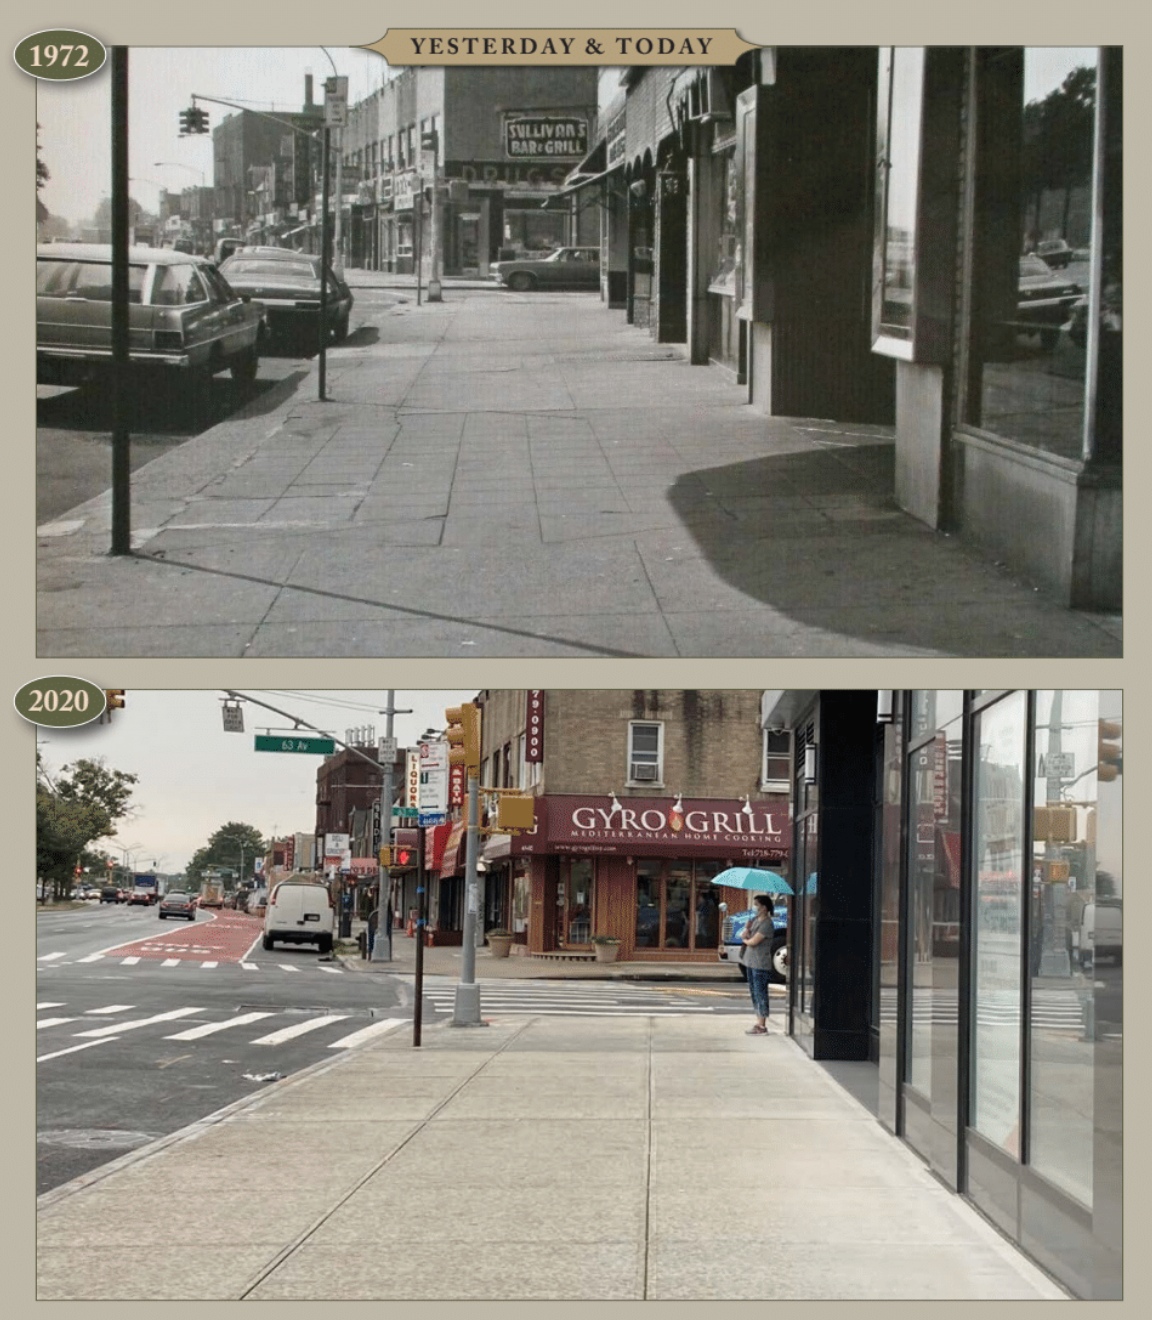 Yesterday & Today – Woodhaven Blvd north of 63rd Ave, looking south, 1972